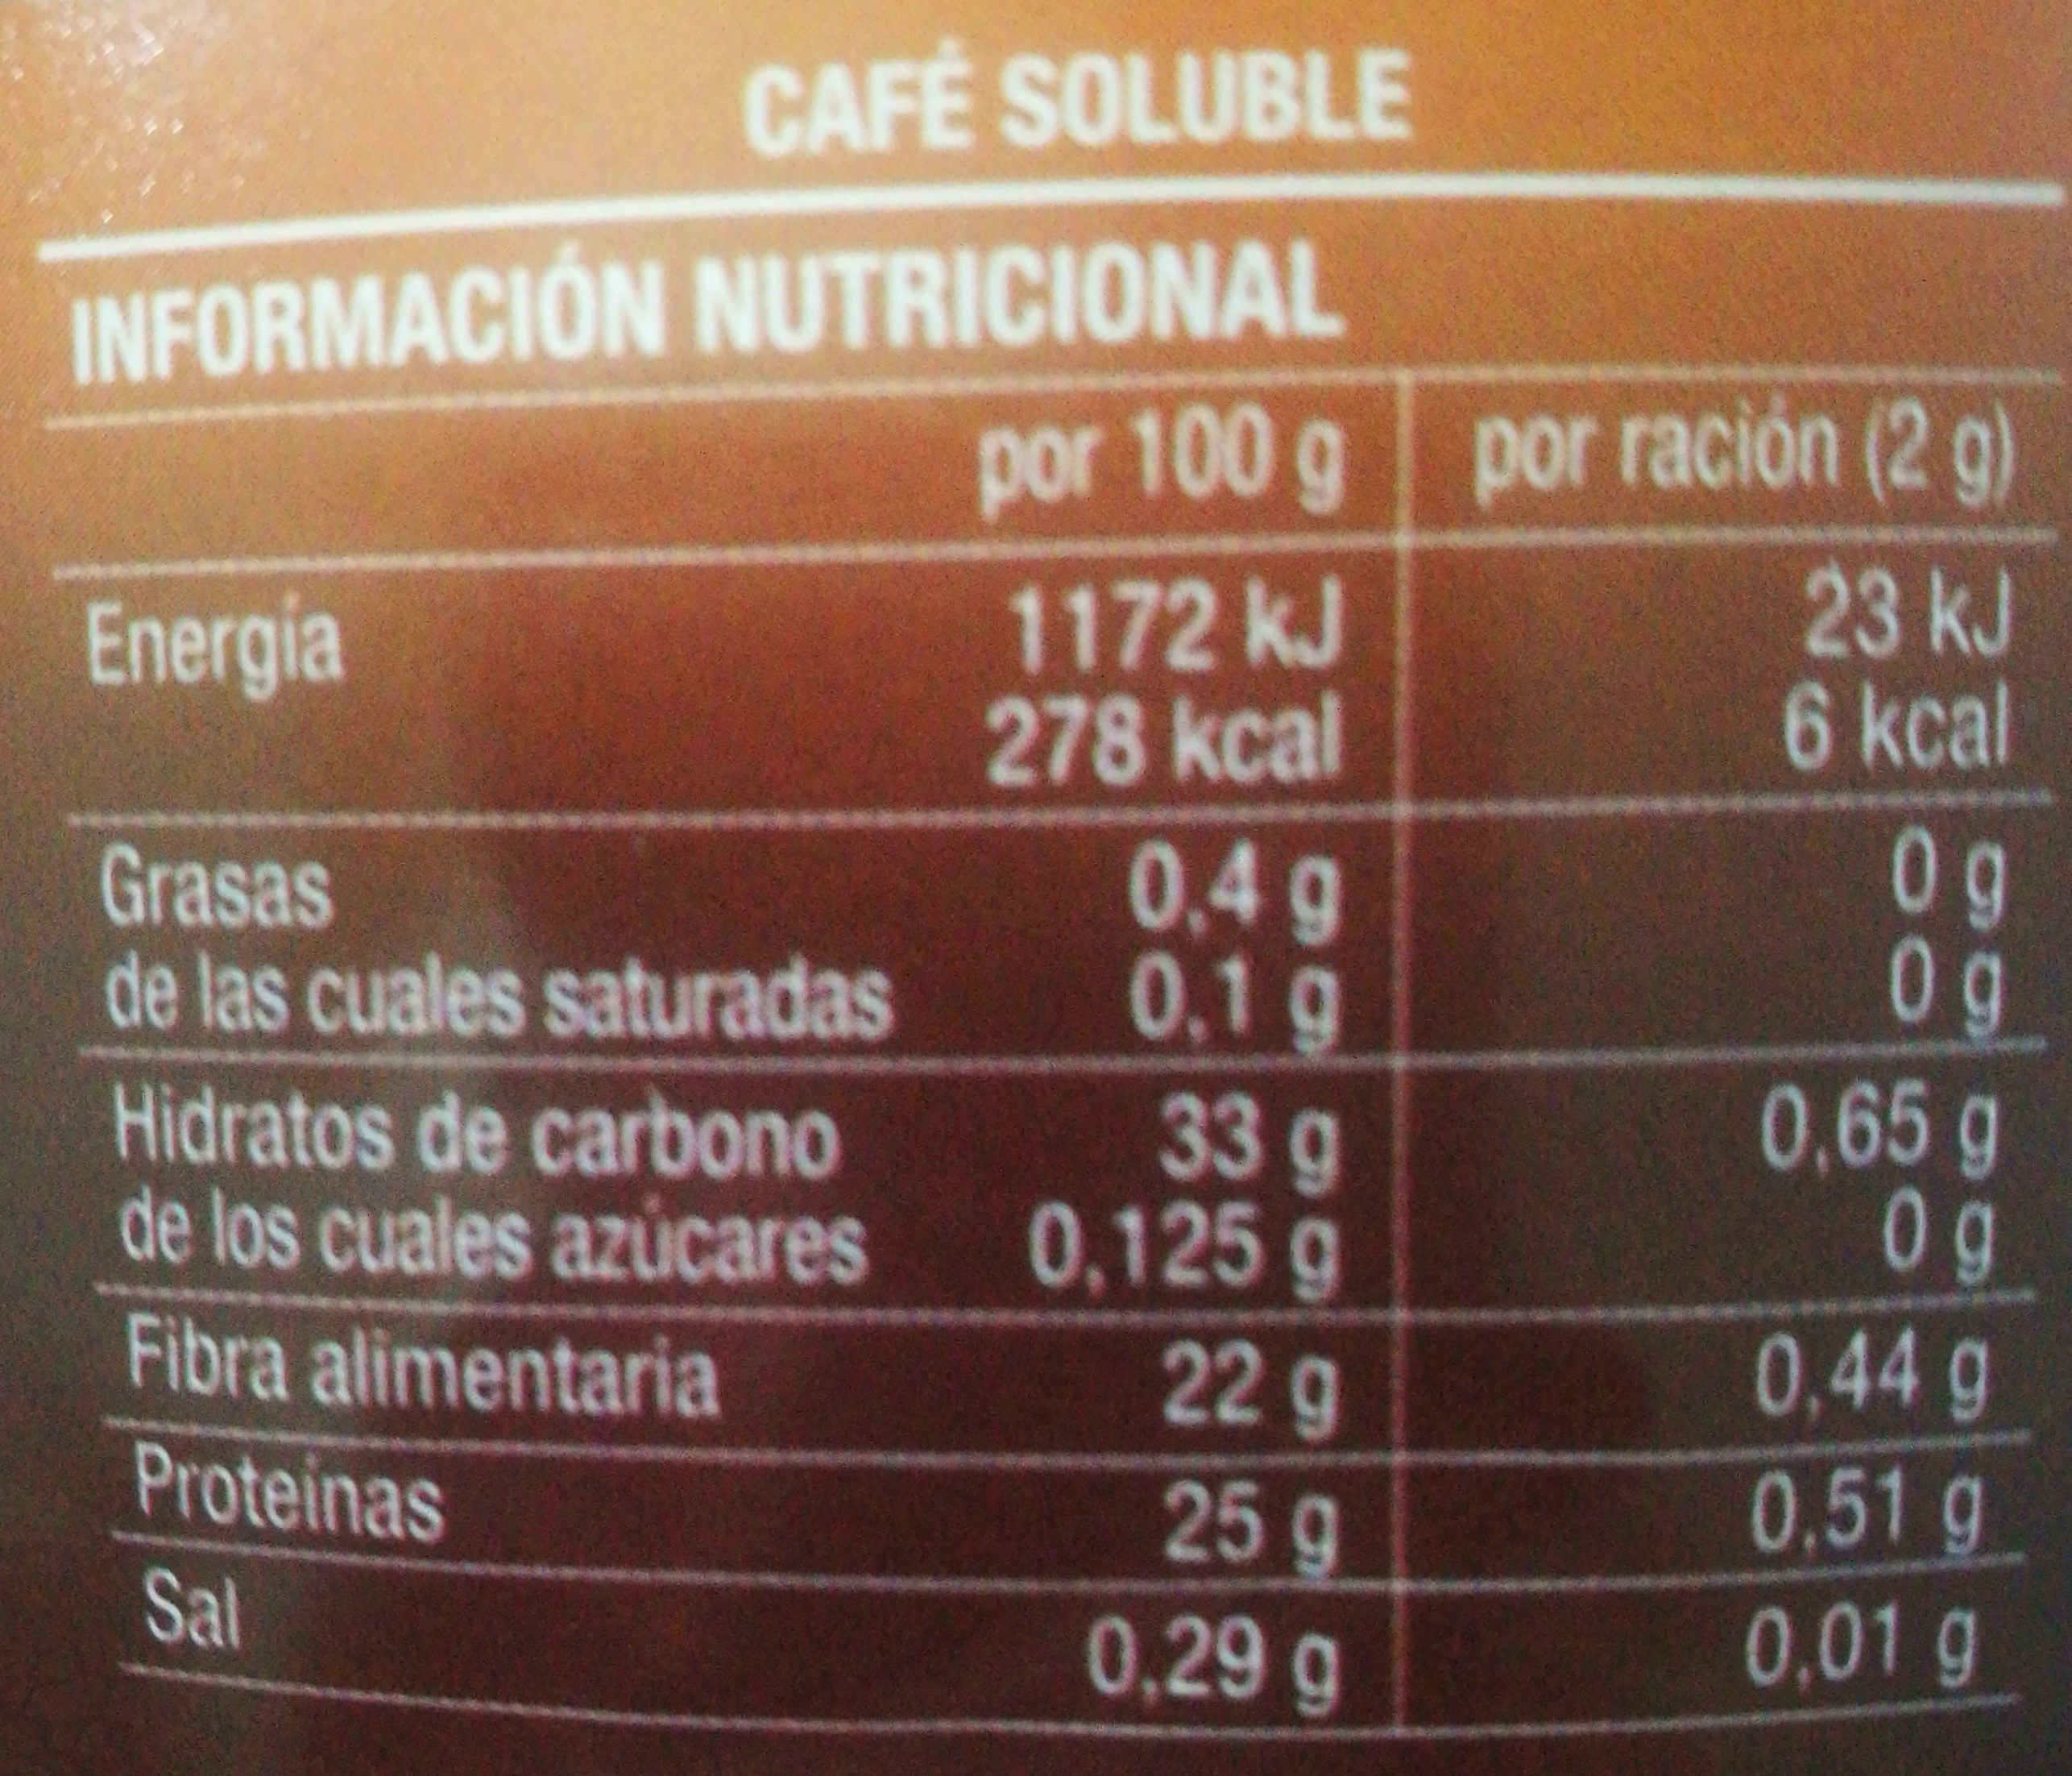 Cafe soluble clasico. Hacendado. - Nutrition facts